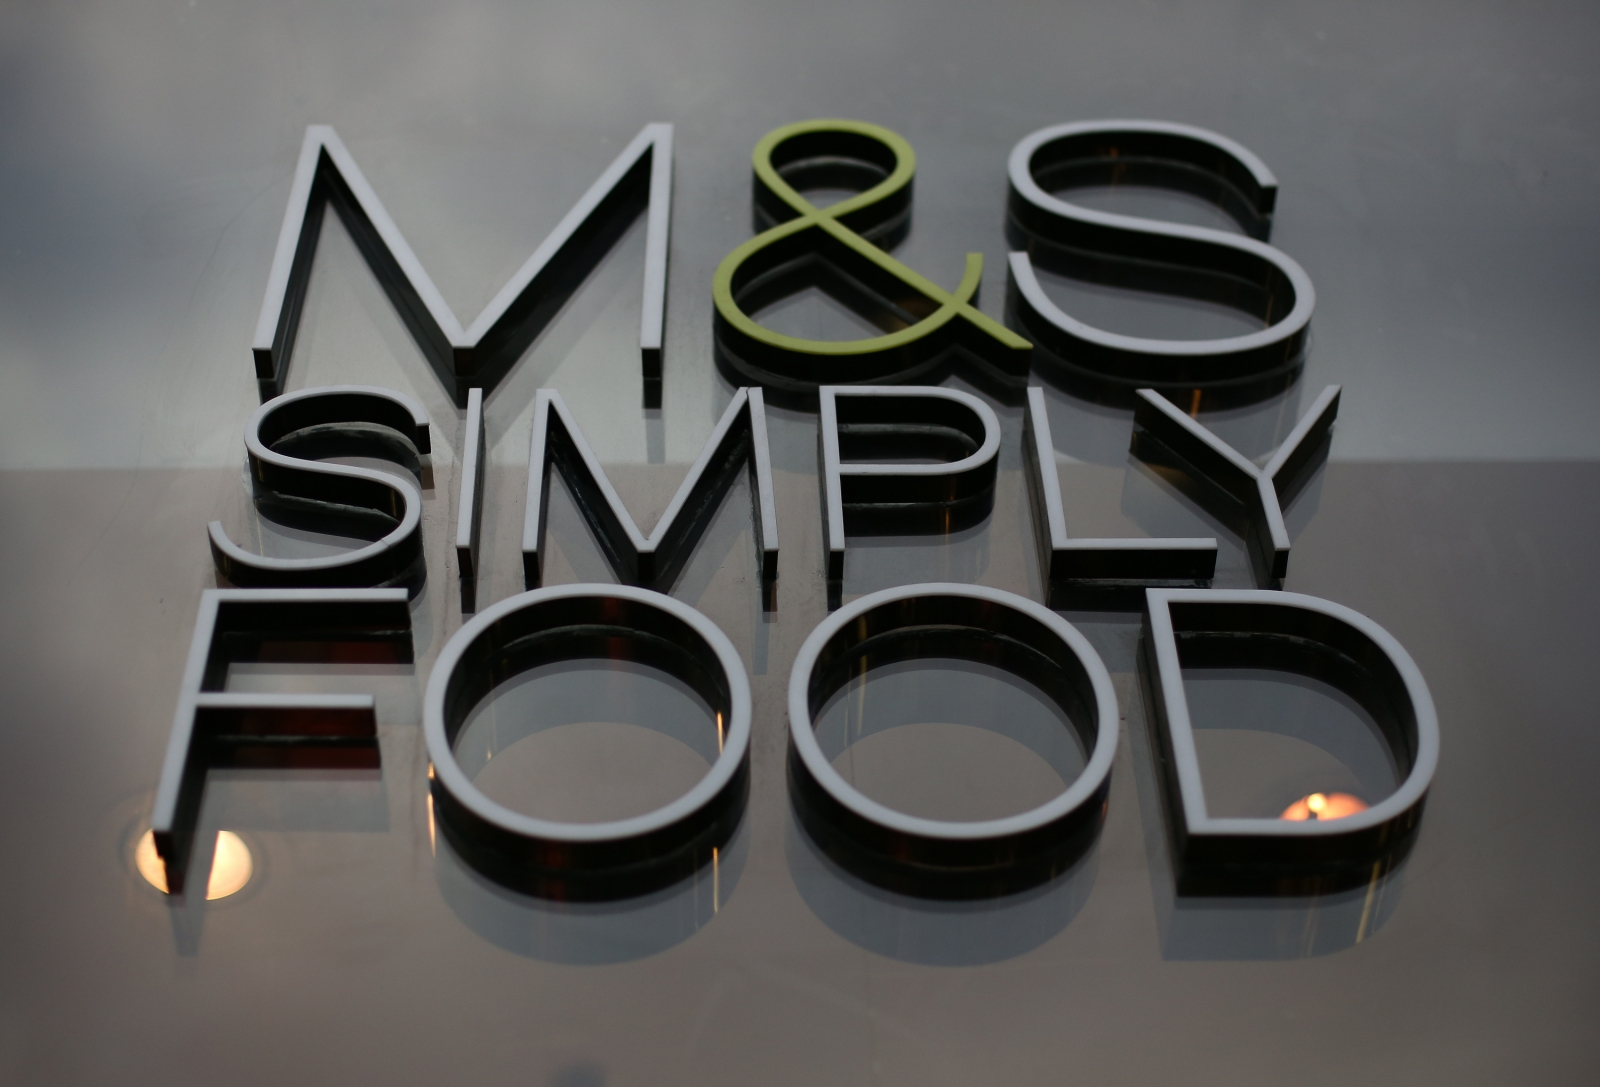 marks spencer company Marks & spencer launches 'scan and go' app that lets customers pay with their mobile the company will allow customers to shop and pay on their mobile, no till visit m&s says the brand new.